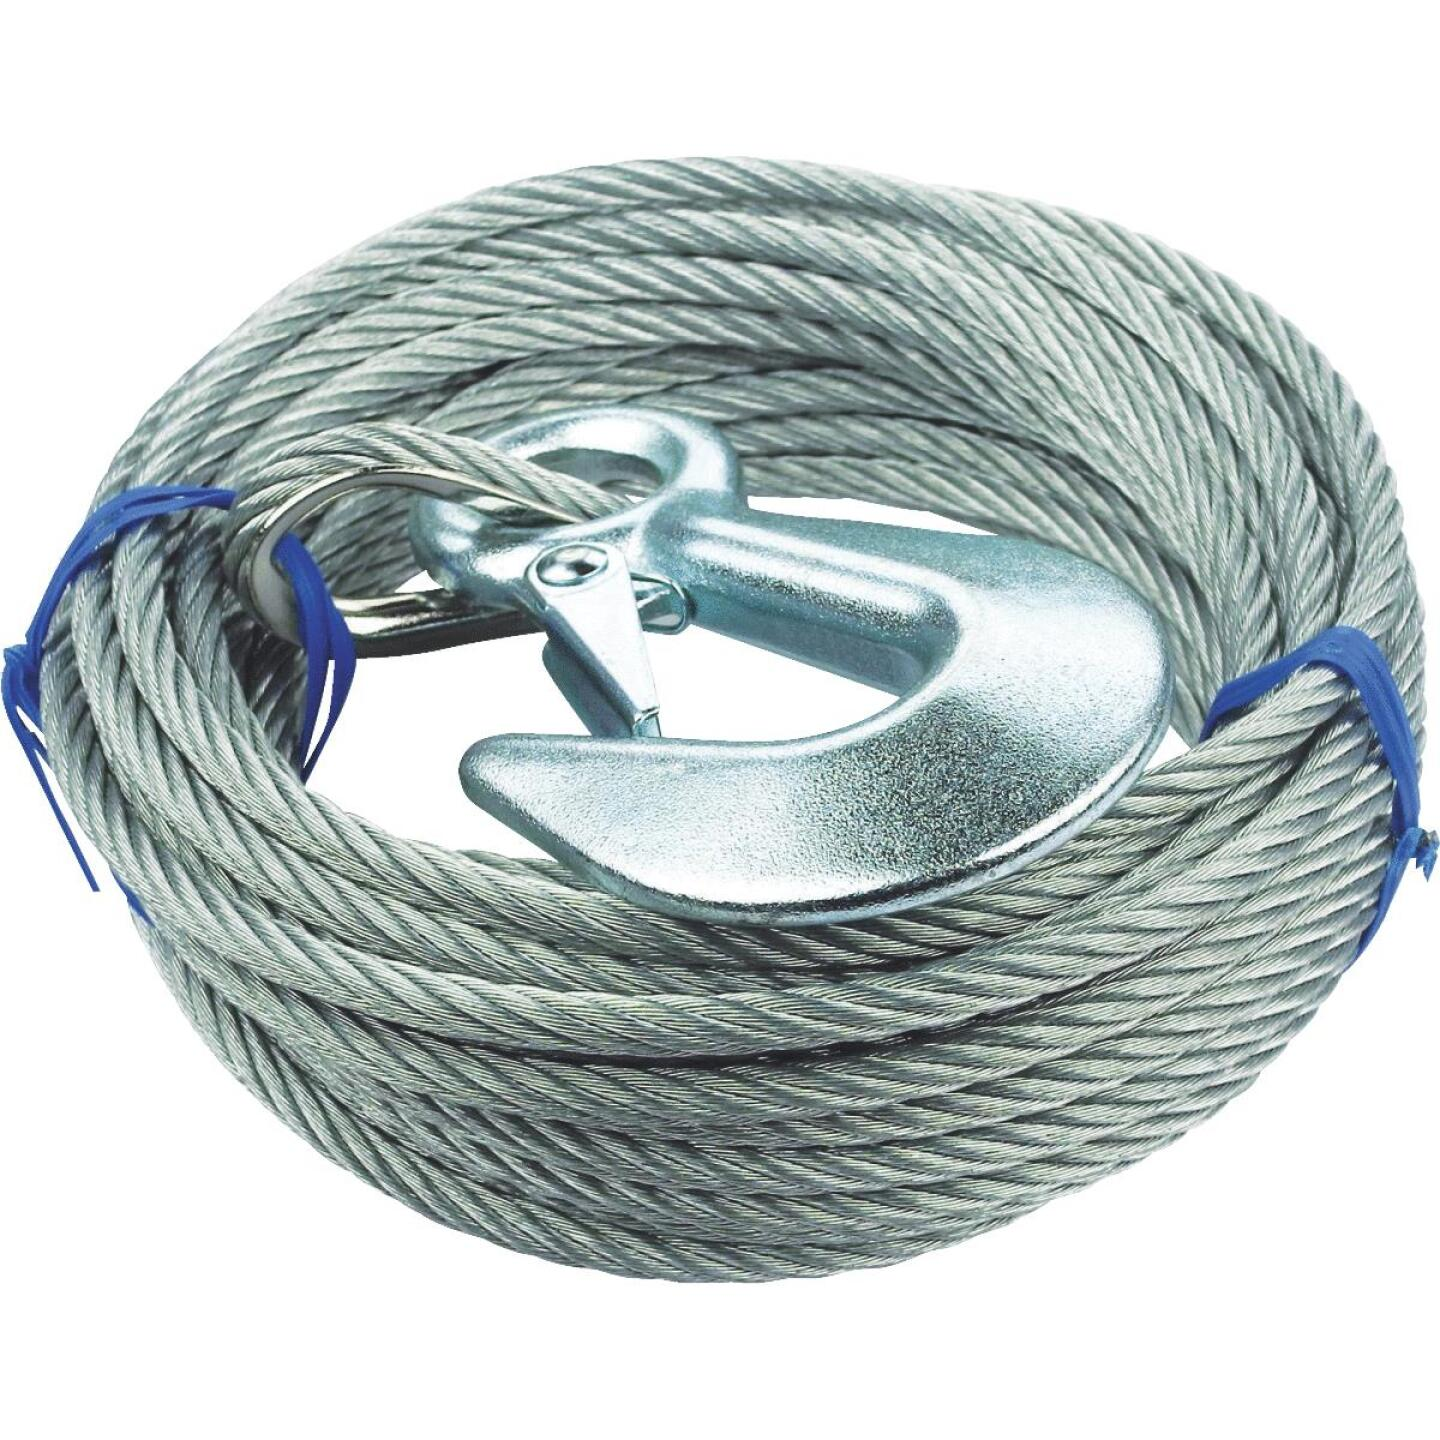 "Seachoice 3/16"" x 25' Galvanized Winch Cable Image 1"